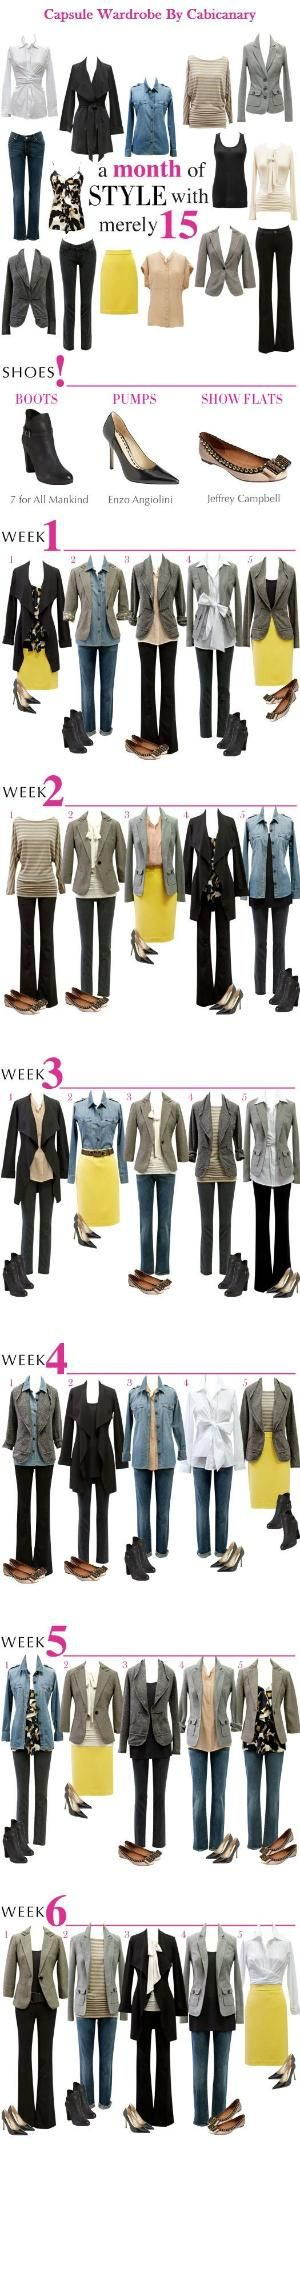 30 Days of Style from 15 Pieces. Great little ideas here. Americans must start investing in less pieces with more value. by Tatiana Sol